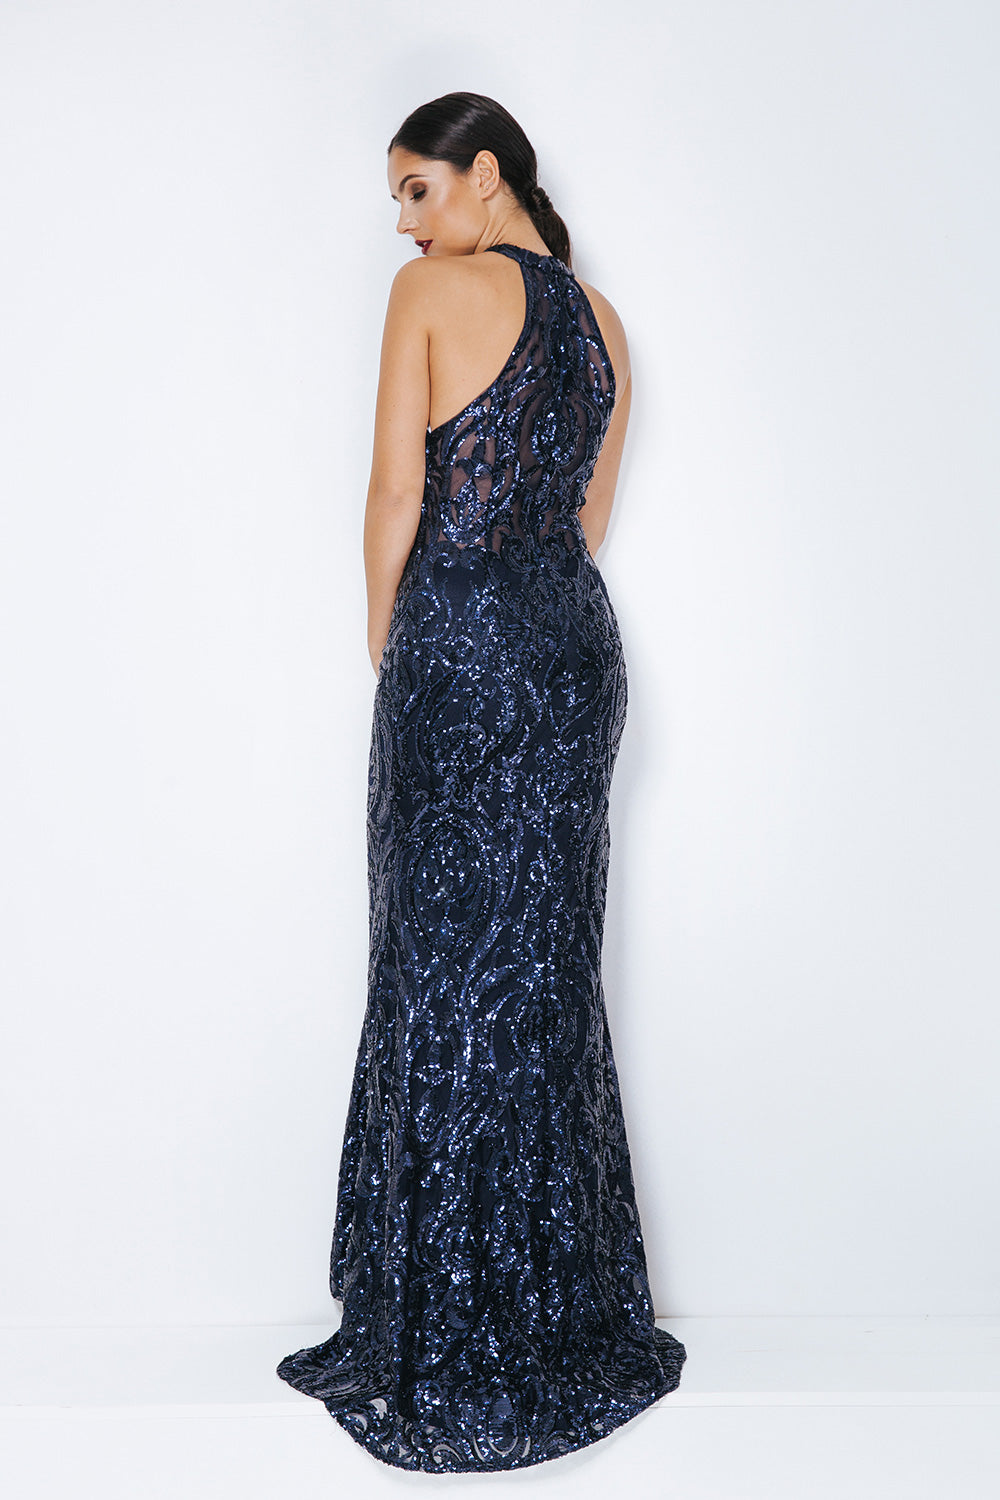 Midnight Blue Evening Gown - Gissings Boutique